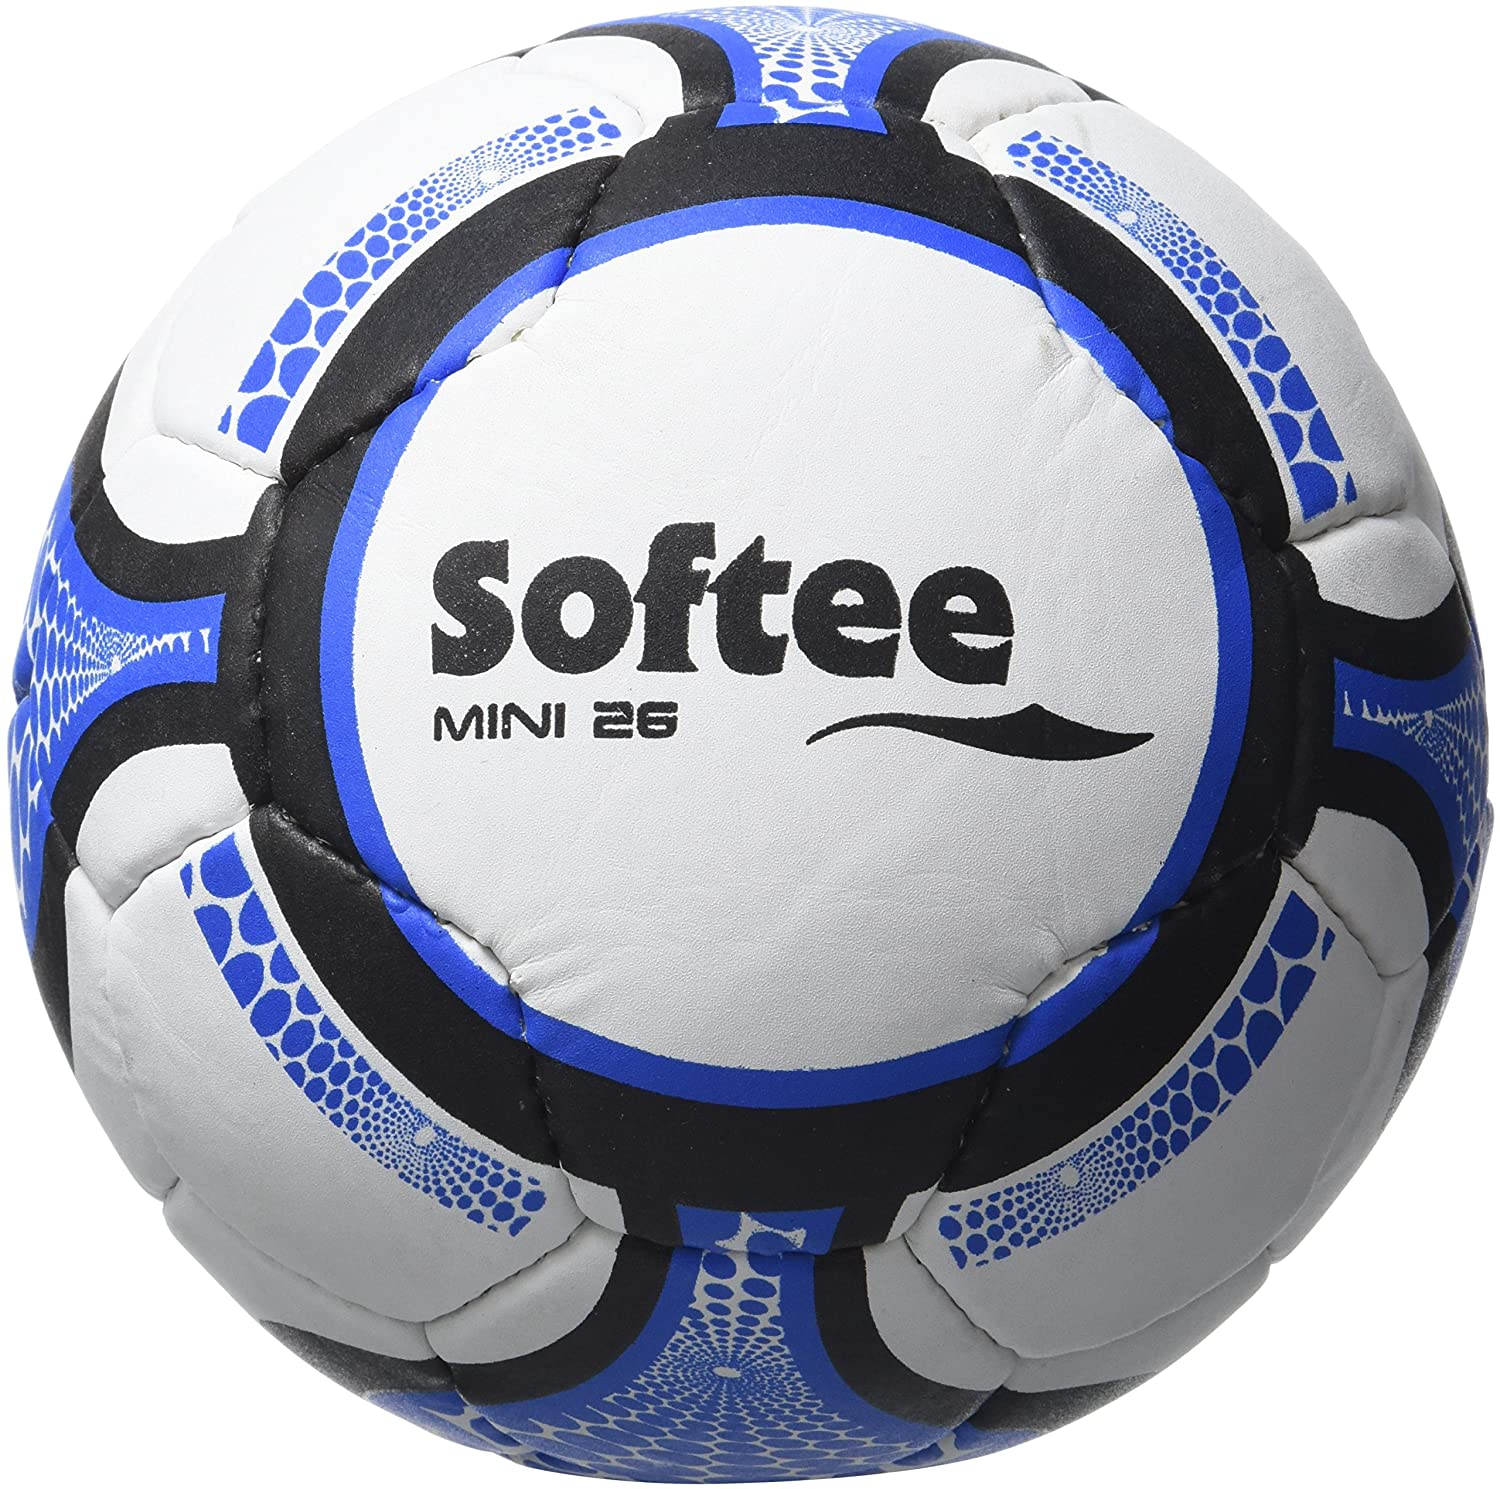 Softee Equipment 0000531 Ballon Mini 26, Blanc, S